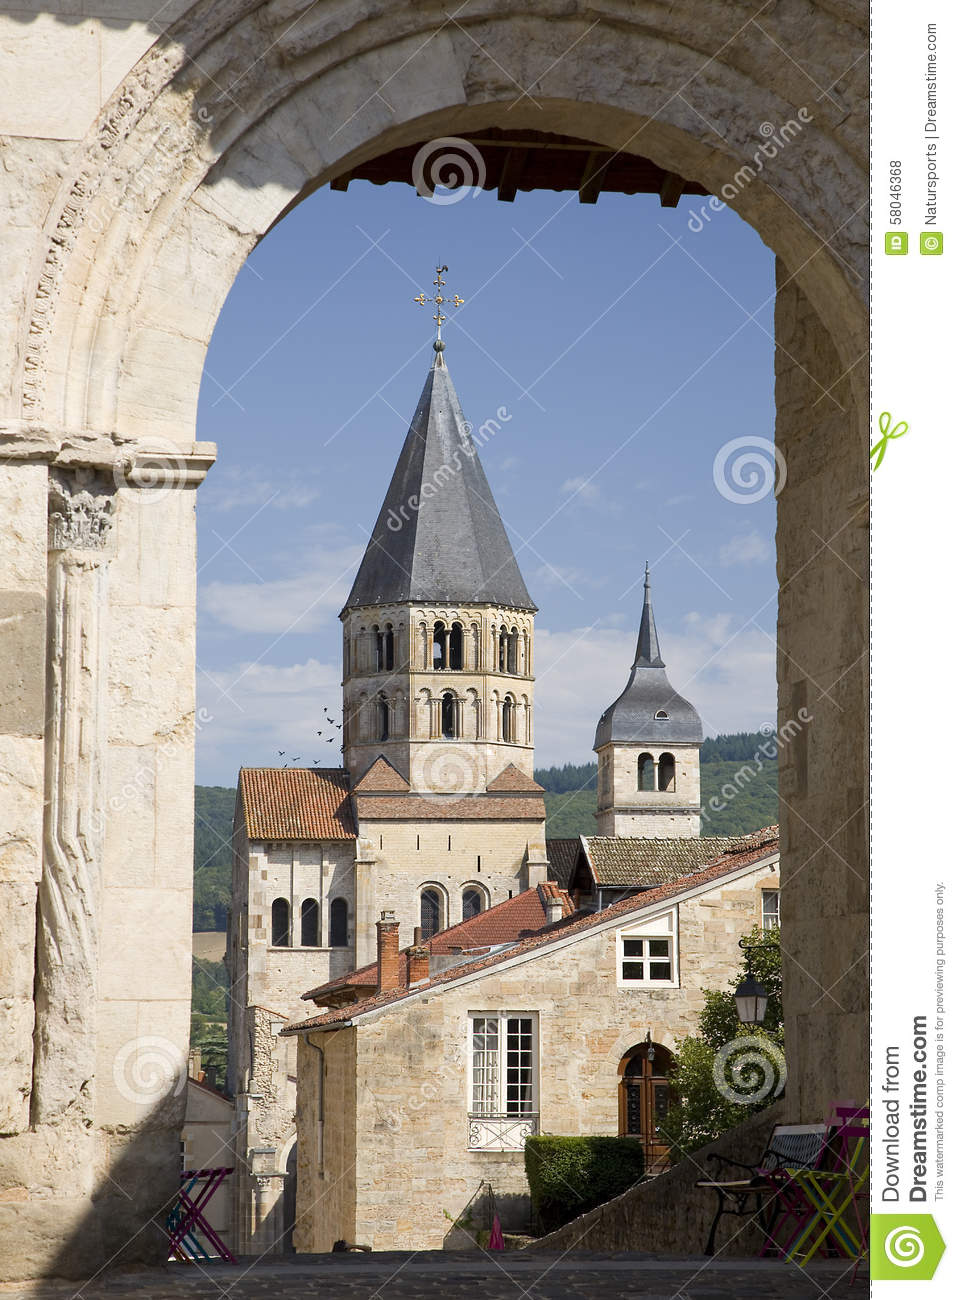 Visit the Abbey of Cluny